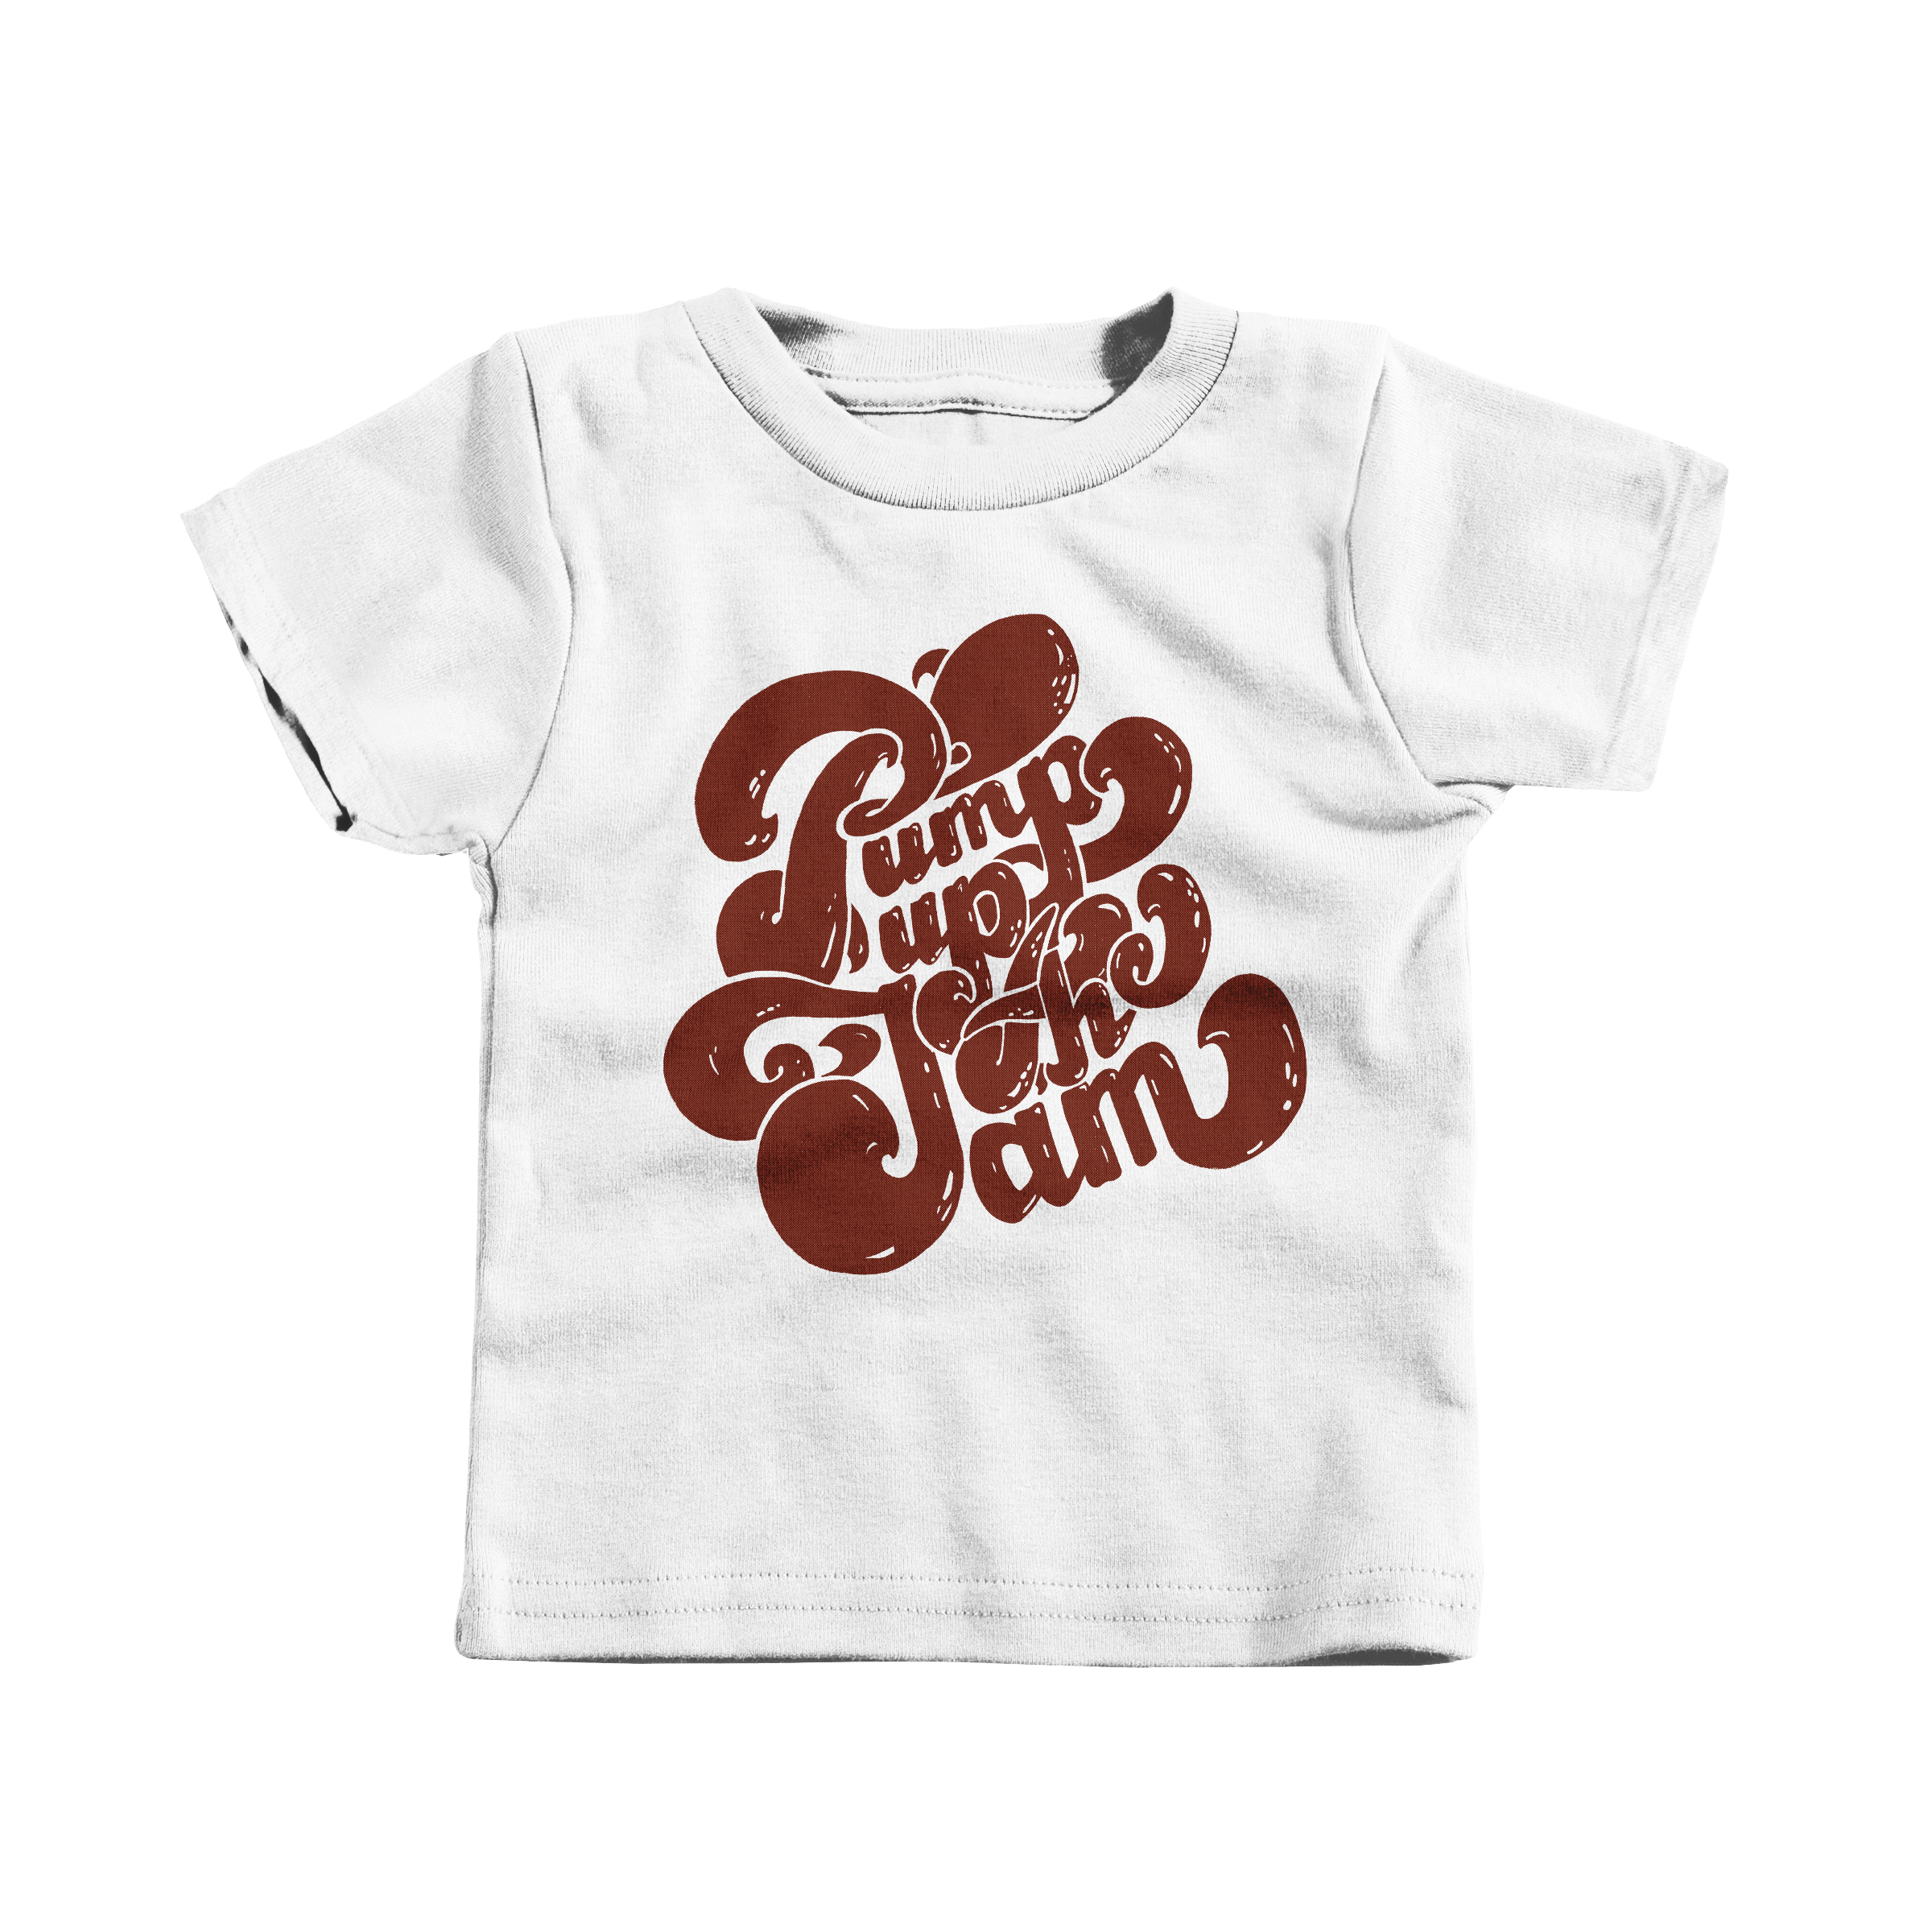 Pump Up the Jam White (T-Shirt)